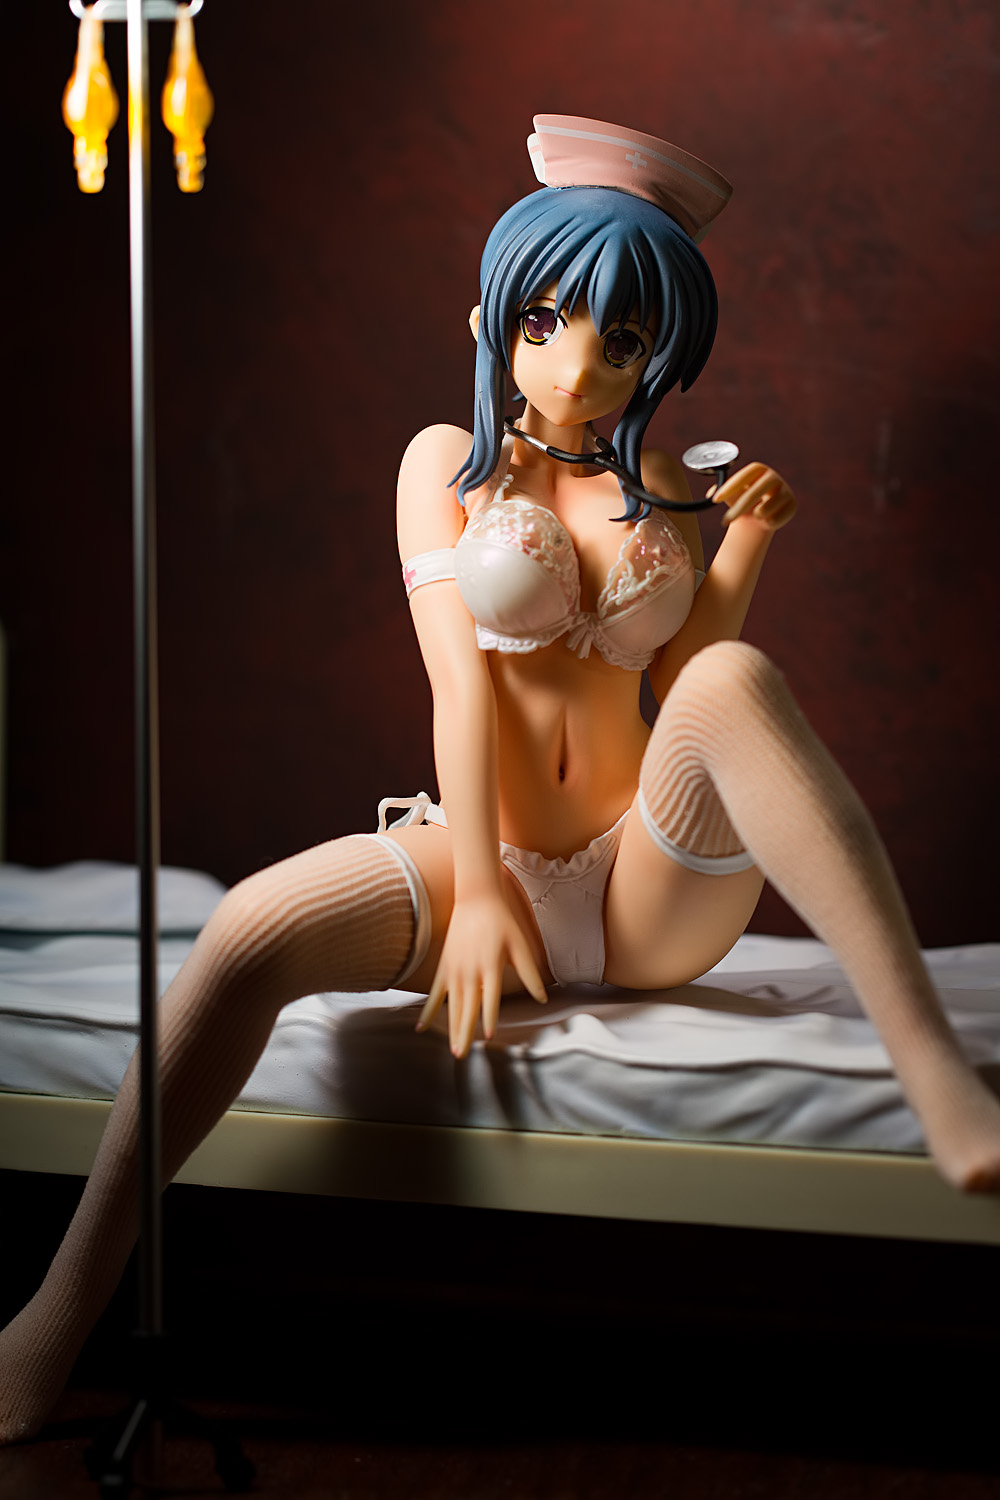 Best of Uncensored Anime Hentai Figures